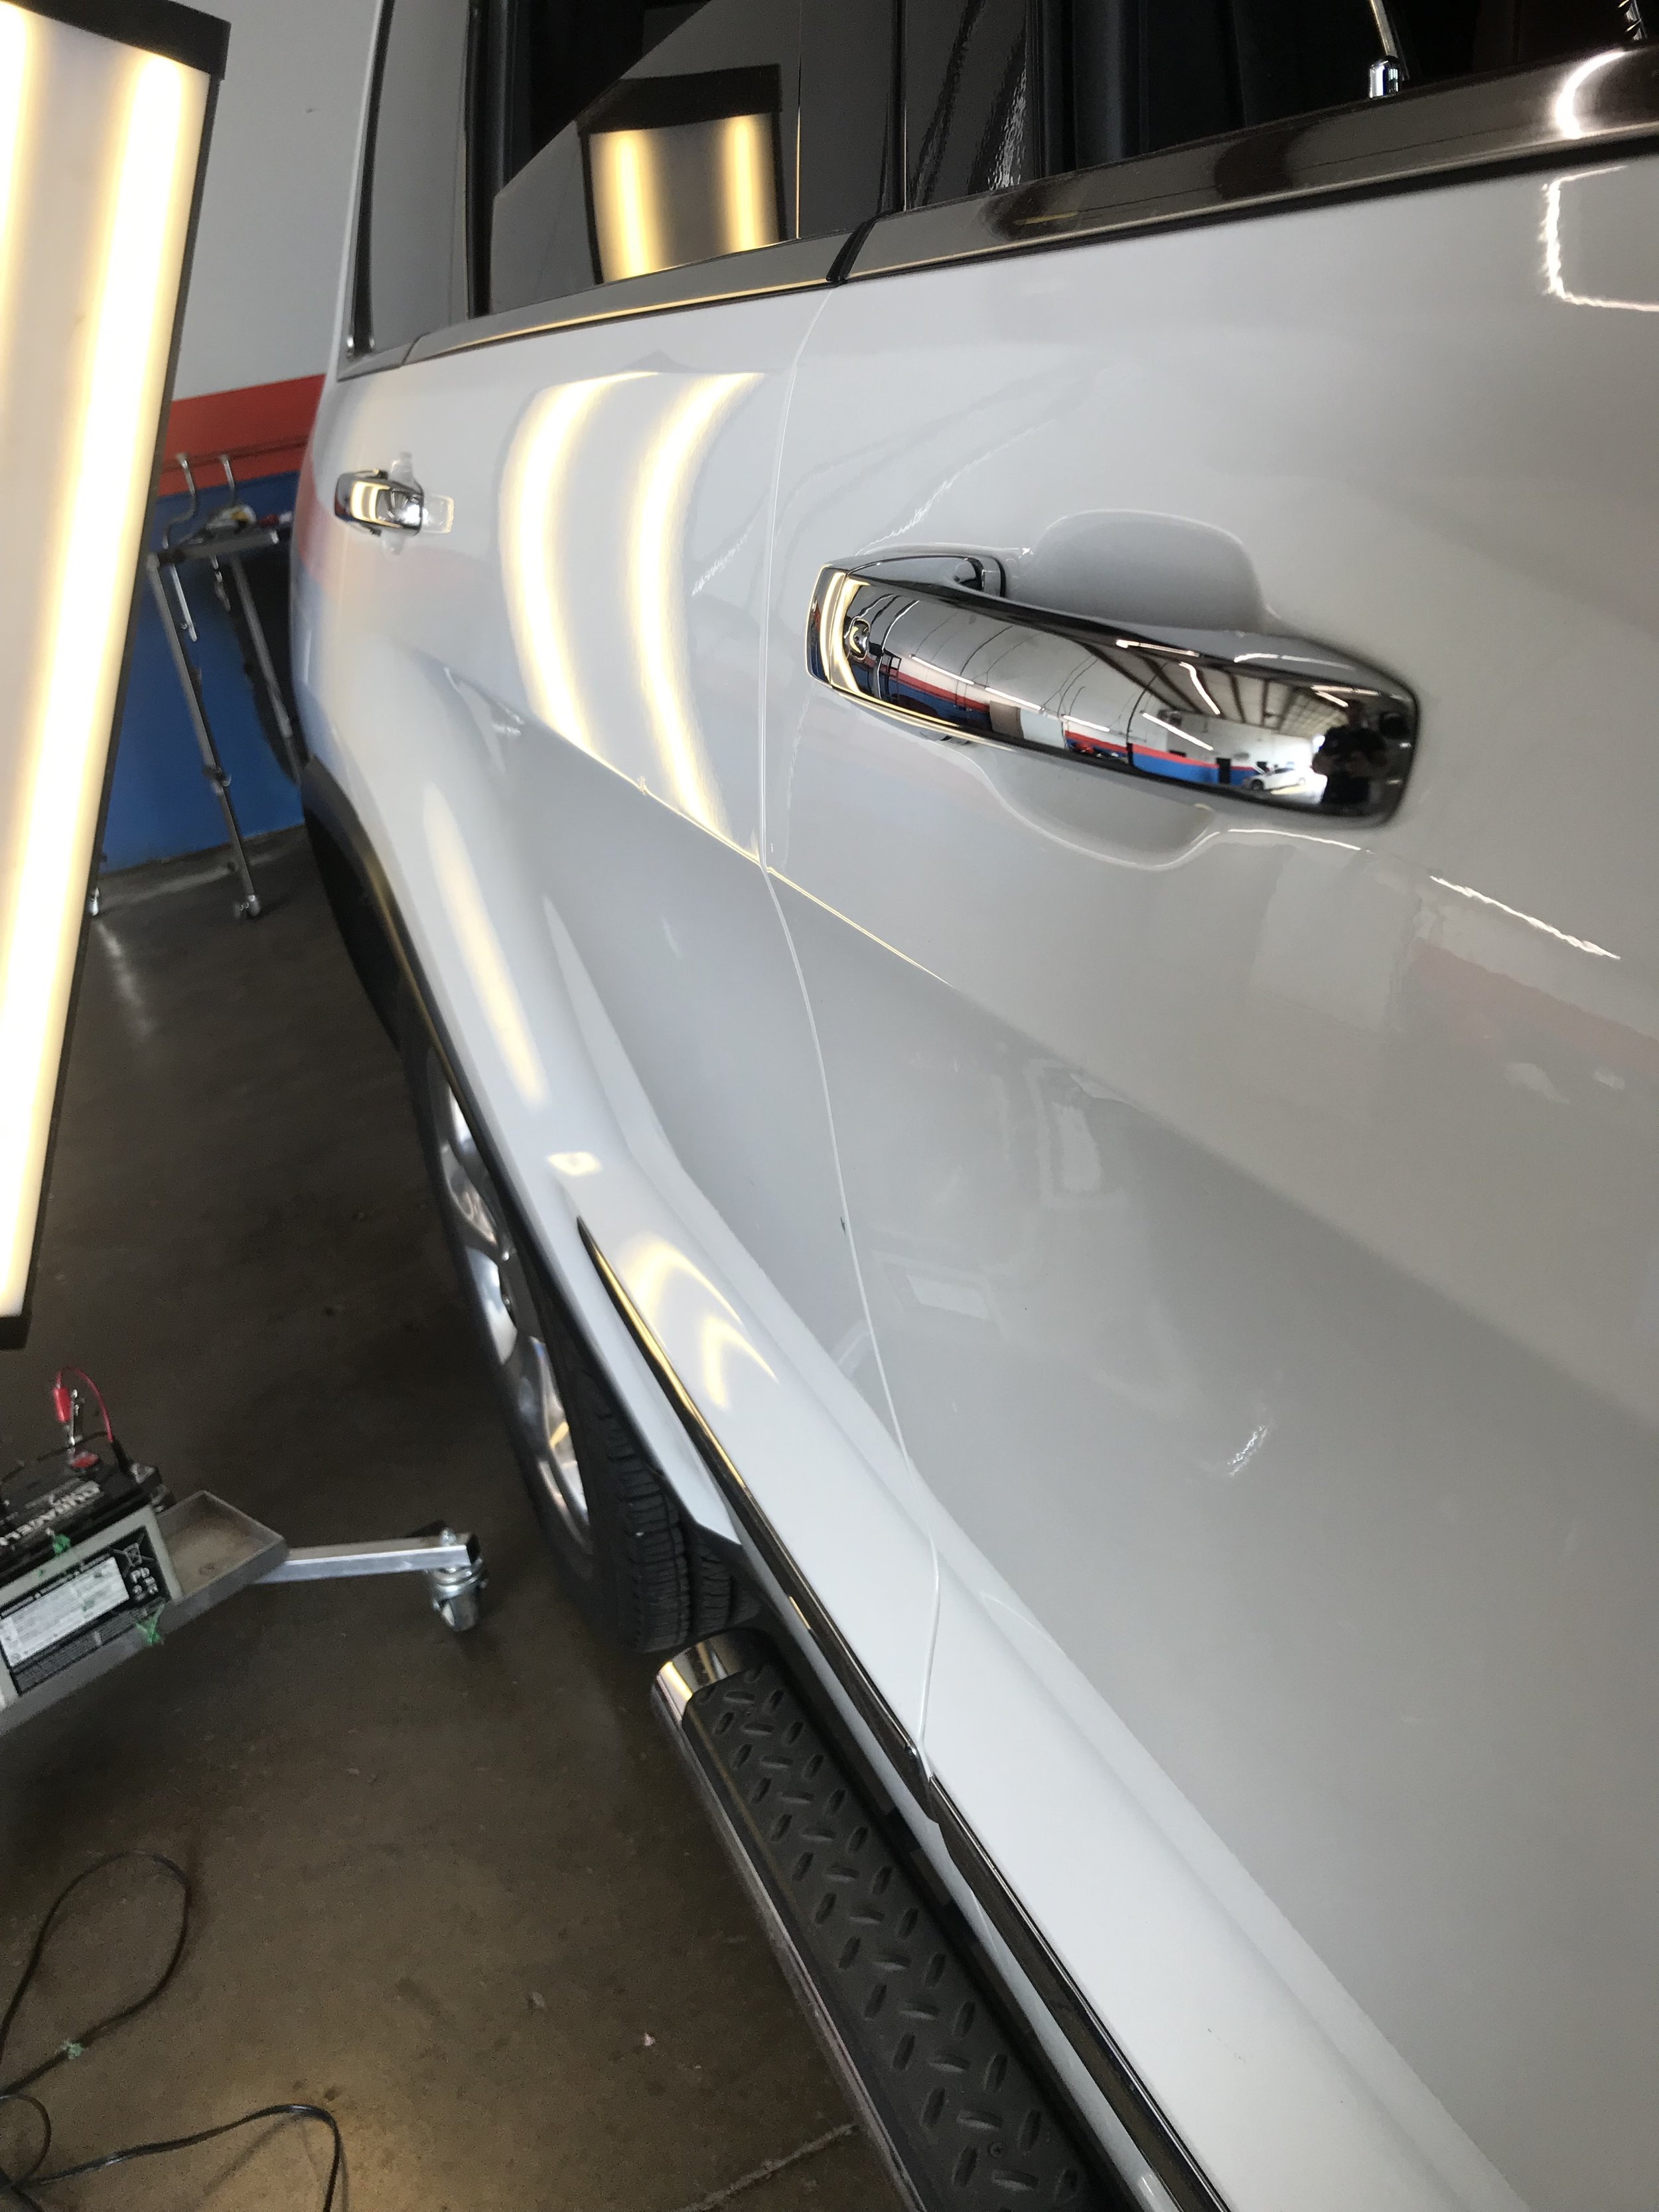 Pride in this ride restored! This beautiful Range Rover door was worked out by our PDR pros